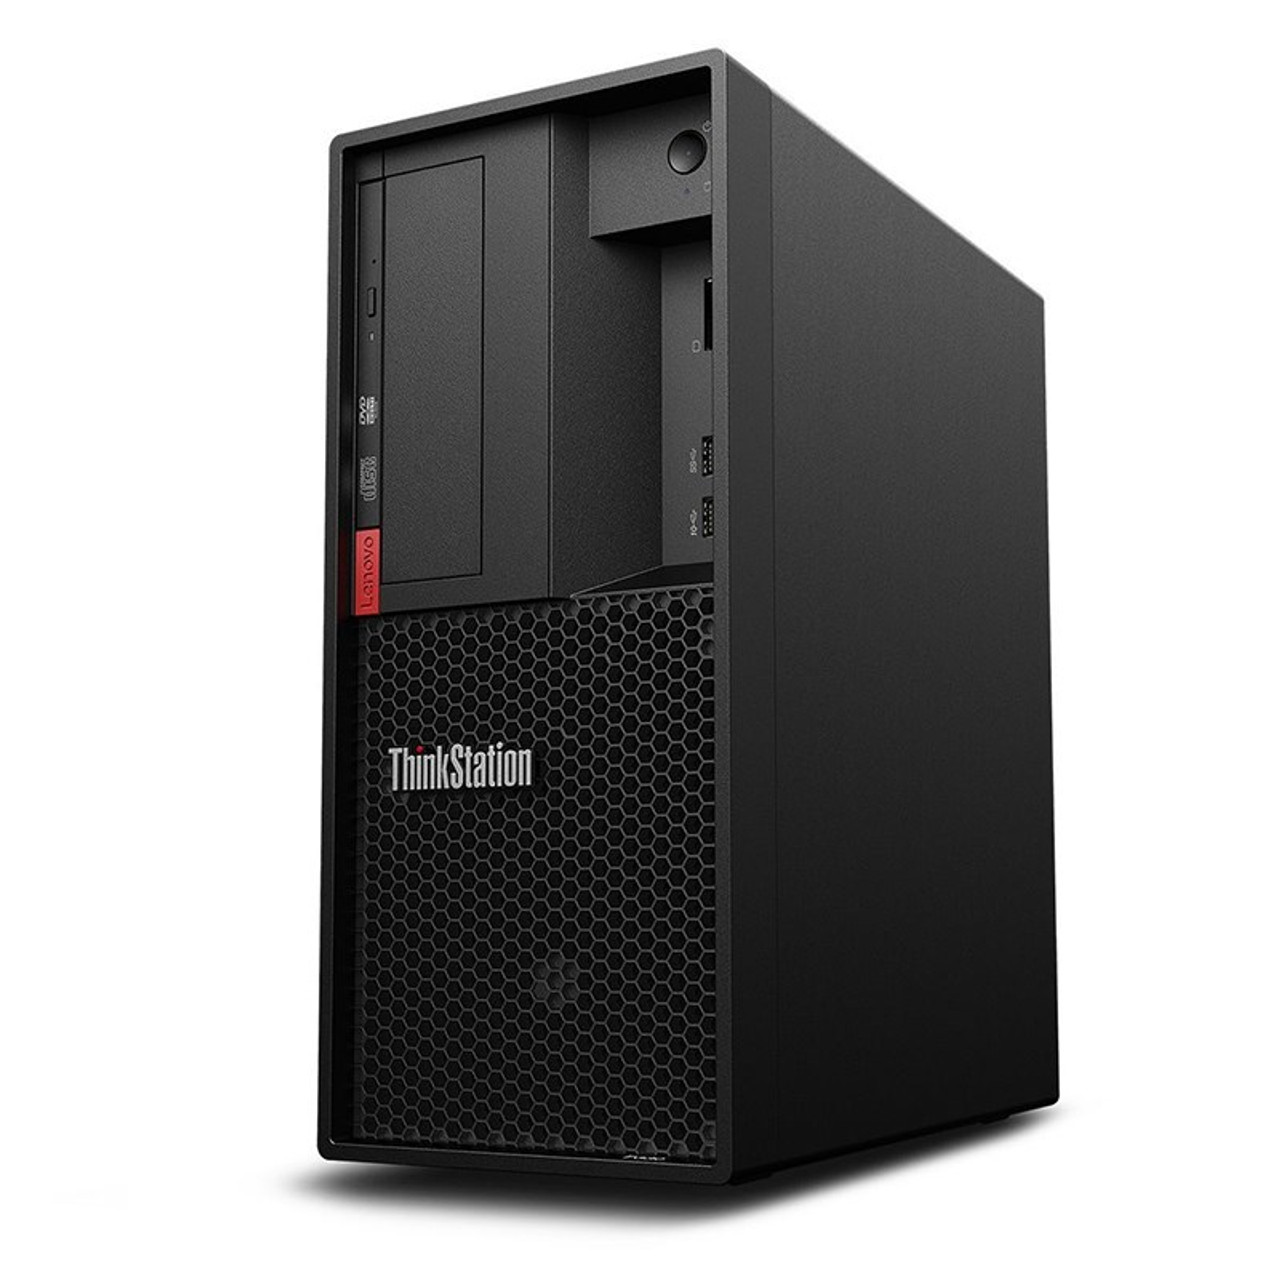 Image for Lenovo ThinkStation P330 Tower Workstation i9-9900 32GB 256GB RTX4000 Win10 Pro CX Computer Superstore